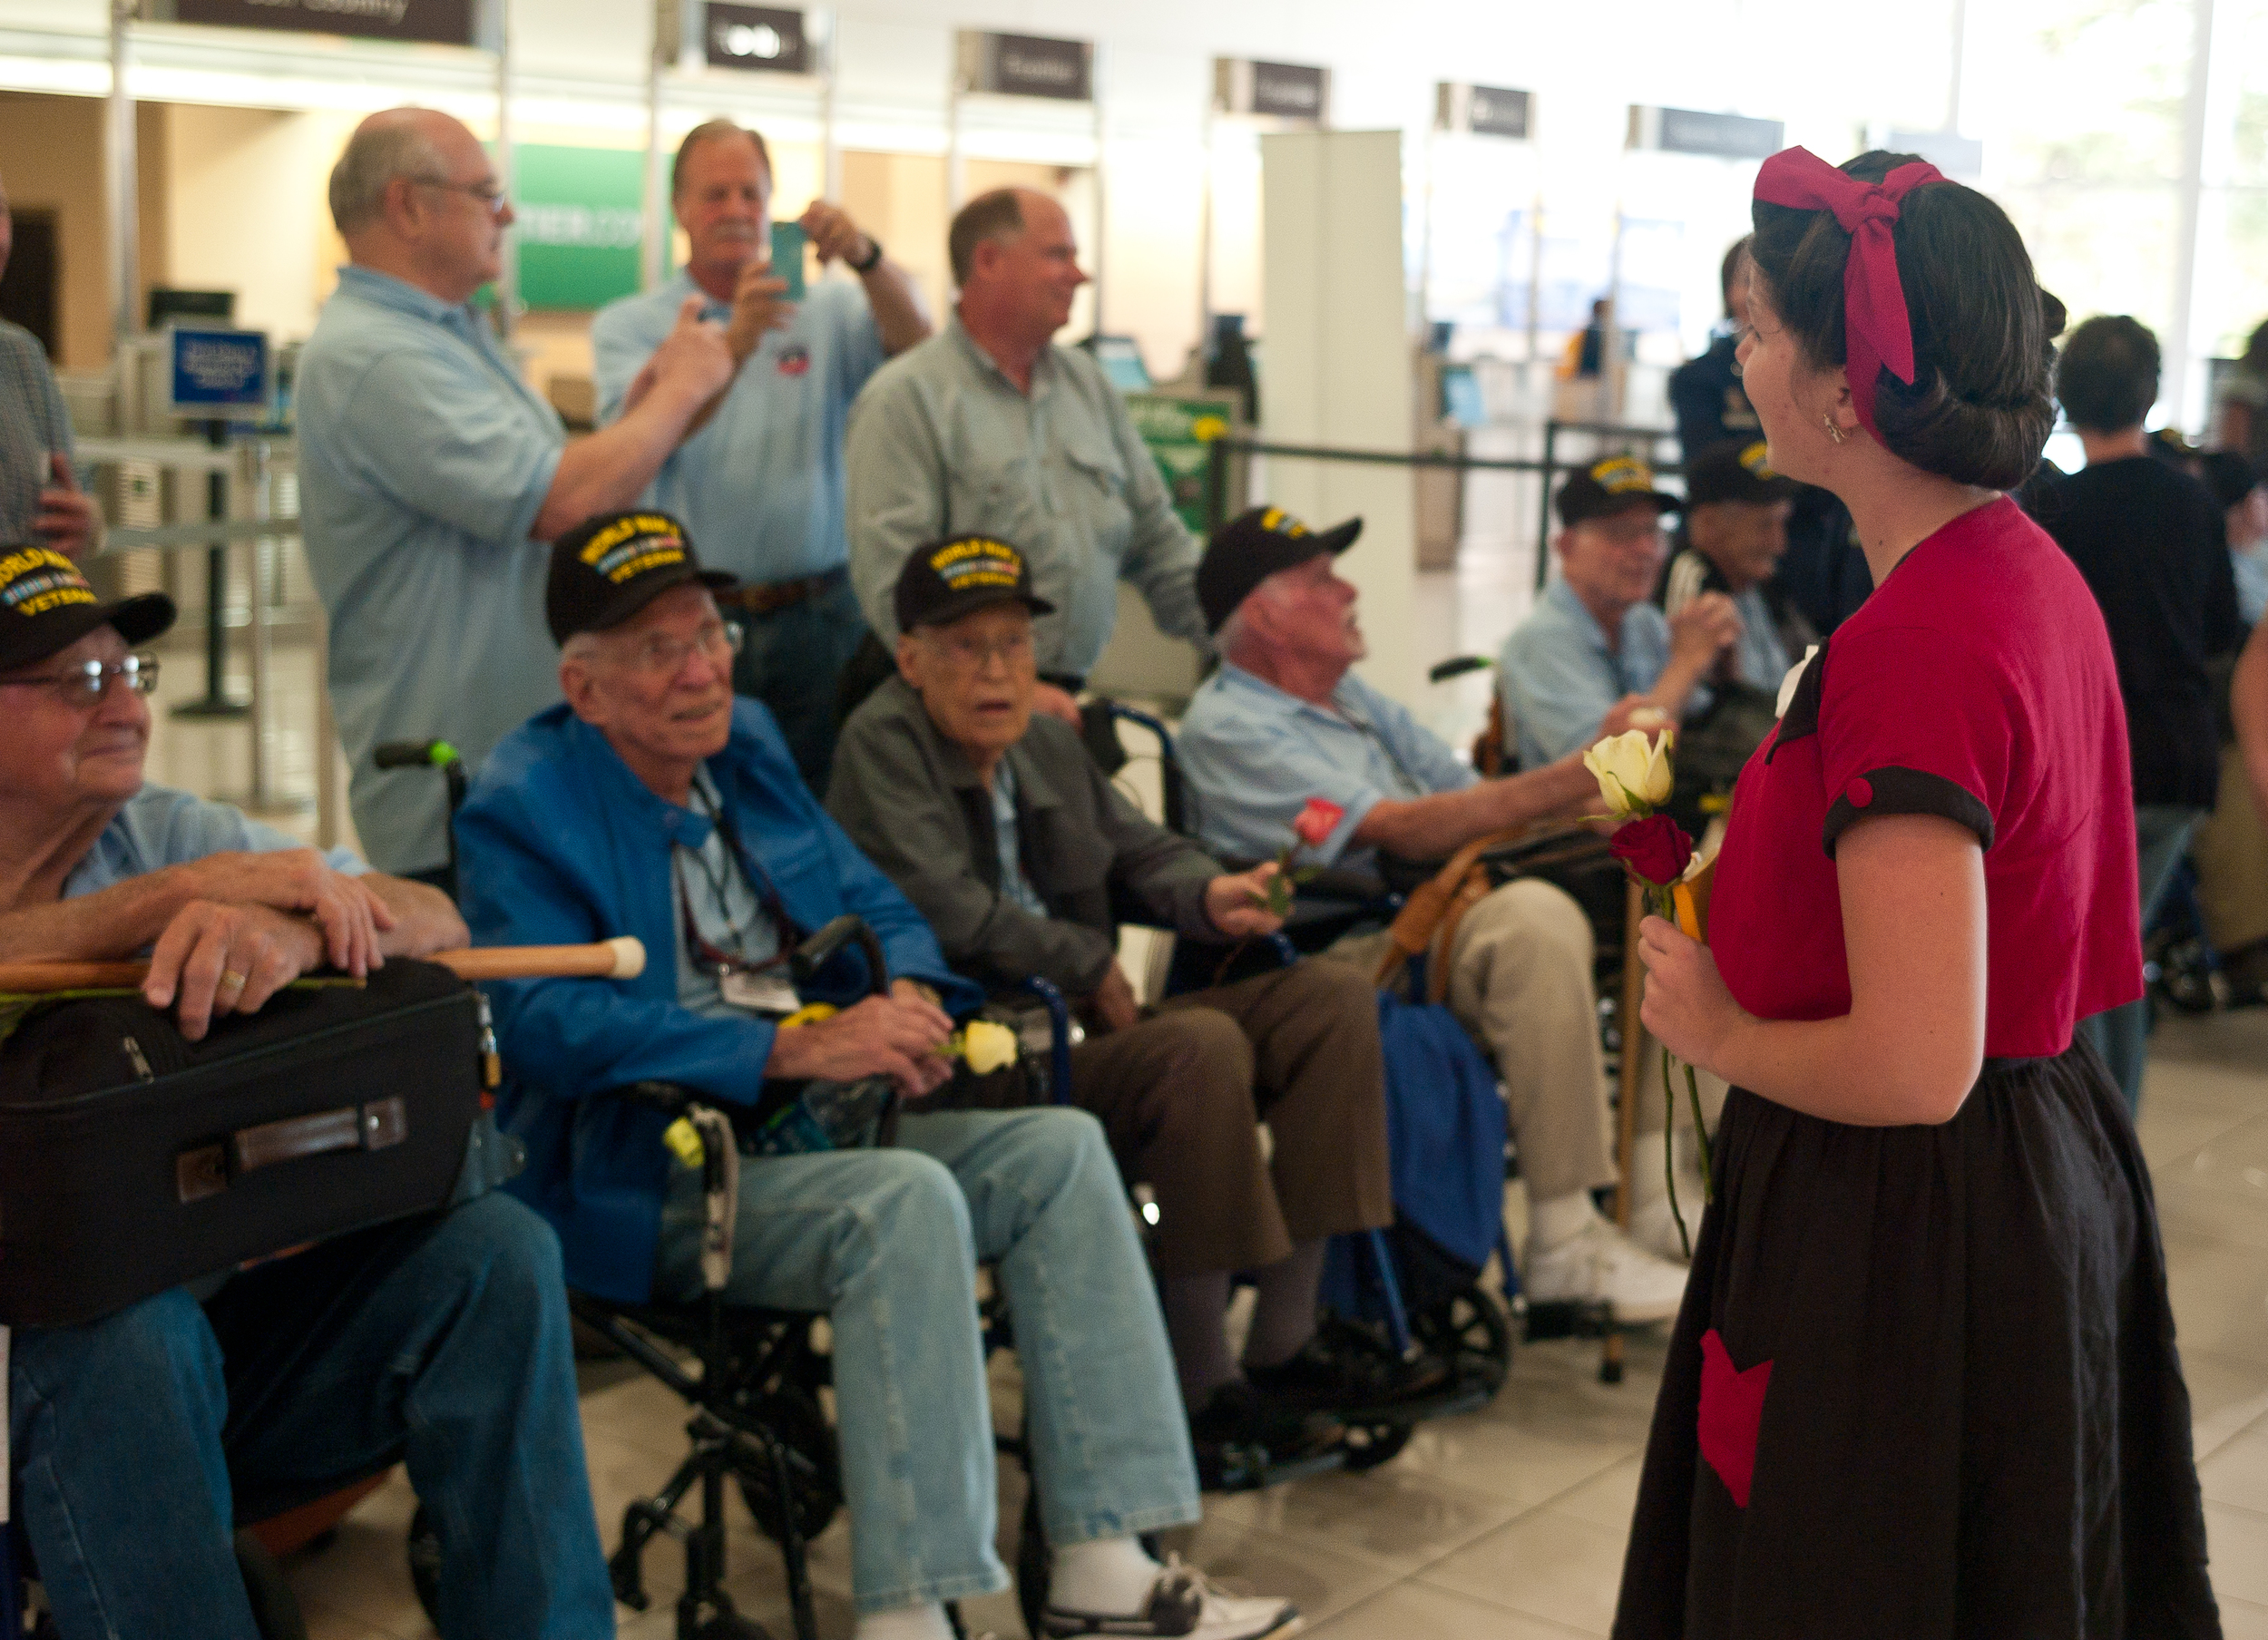 Faith had the wonderful opportunity to go down the line of veterans singing their favorite songs while they waited for the bus to take them to their hotel.